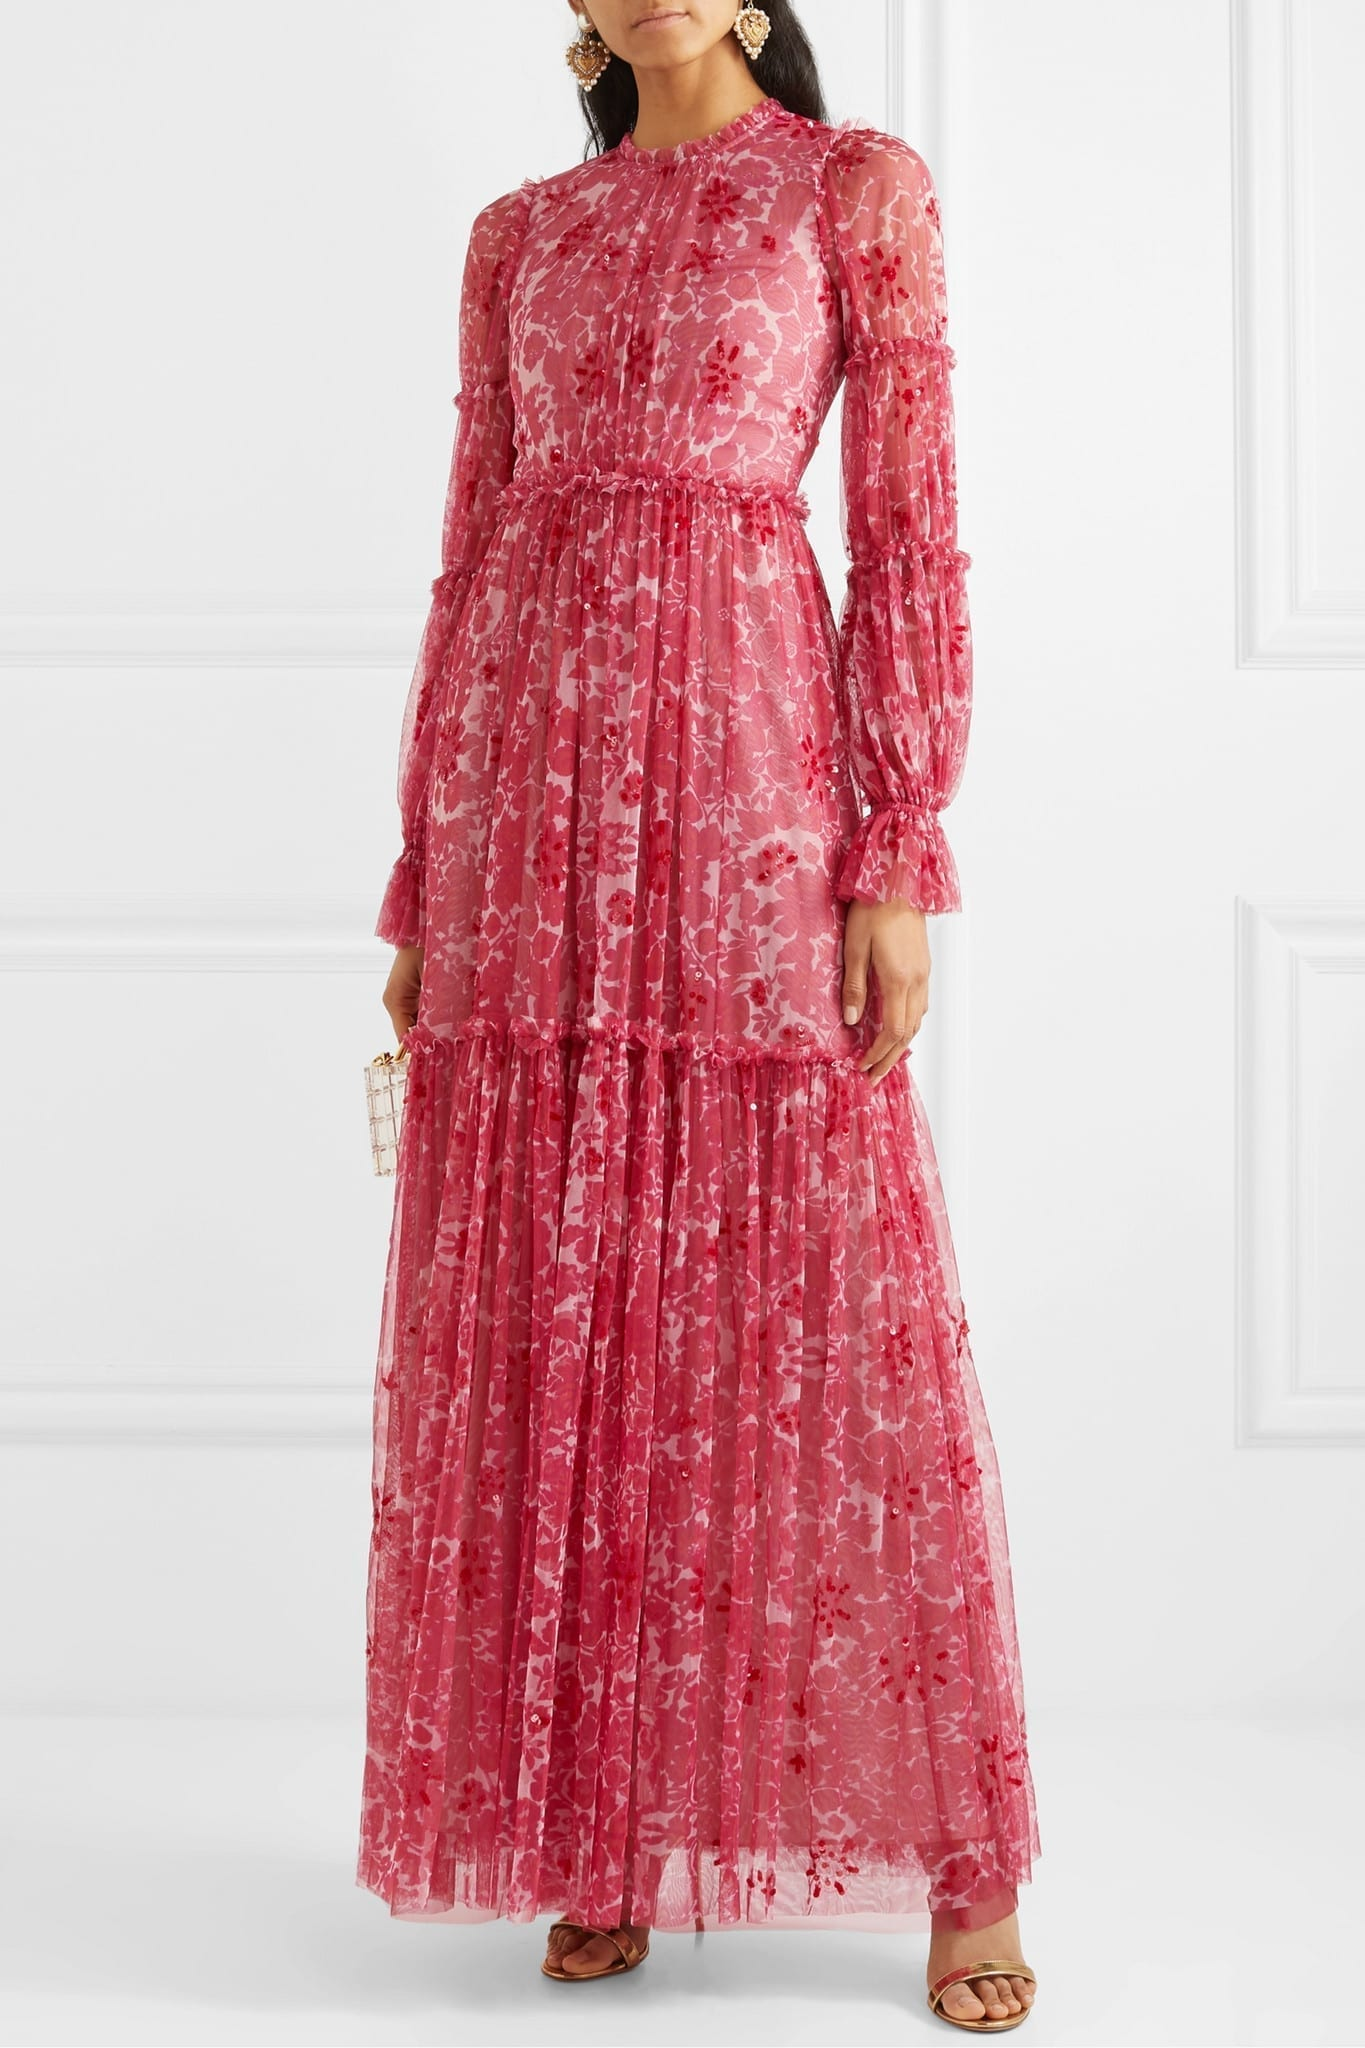 NEEDLE & THREAD Anya Embellished Floral-print Tulle Gown